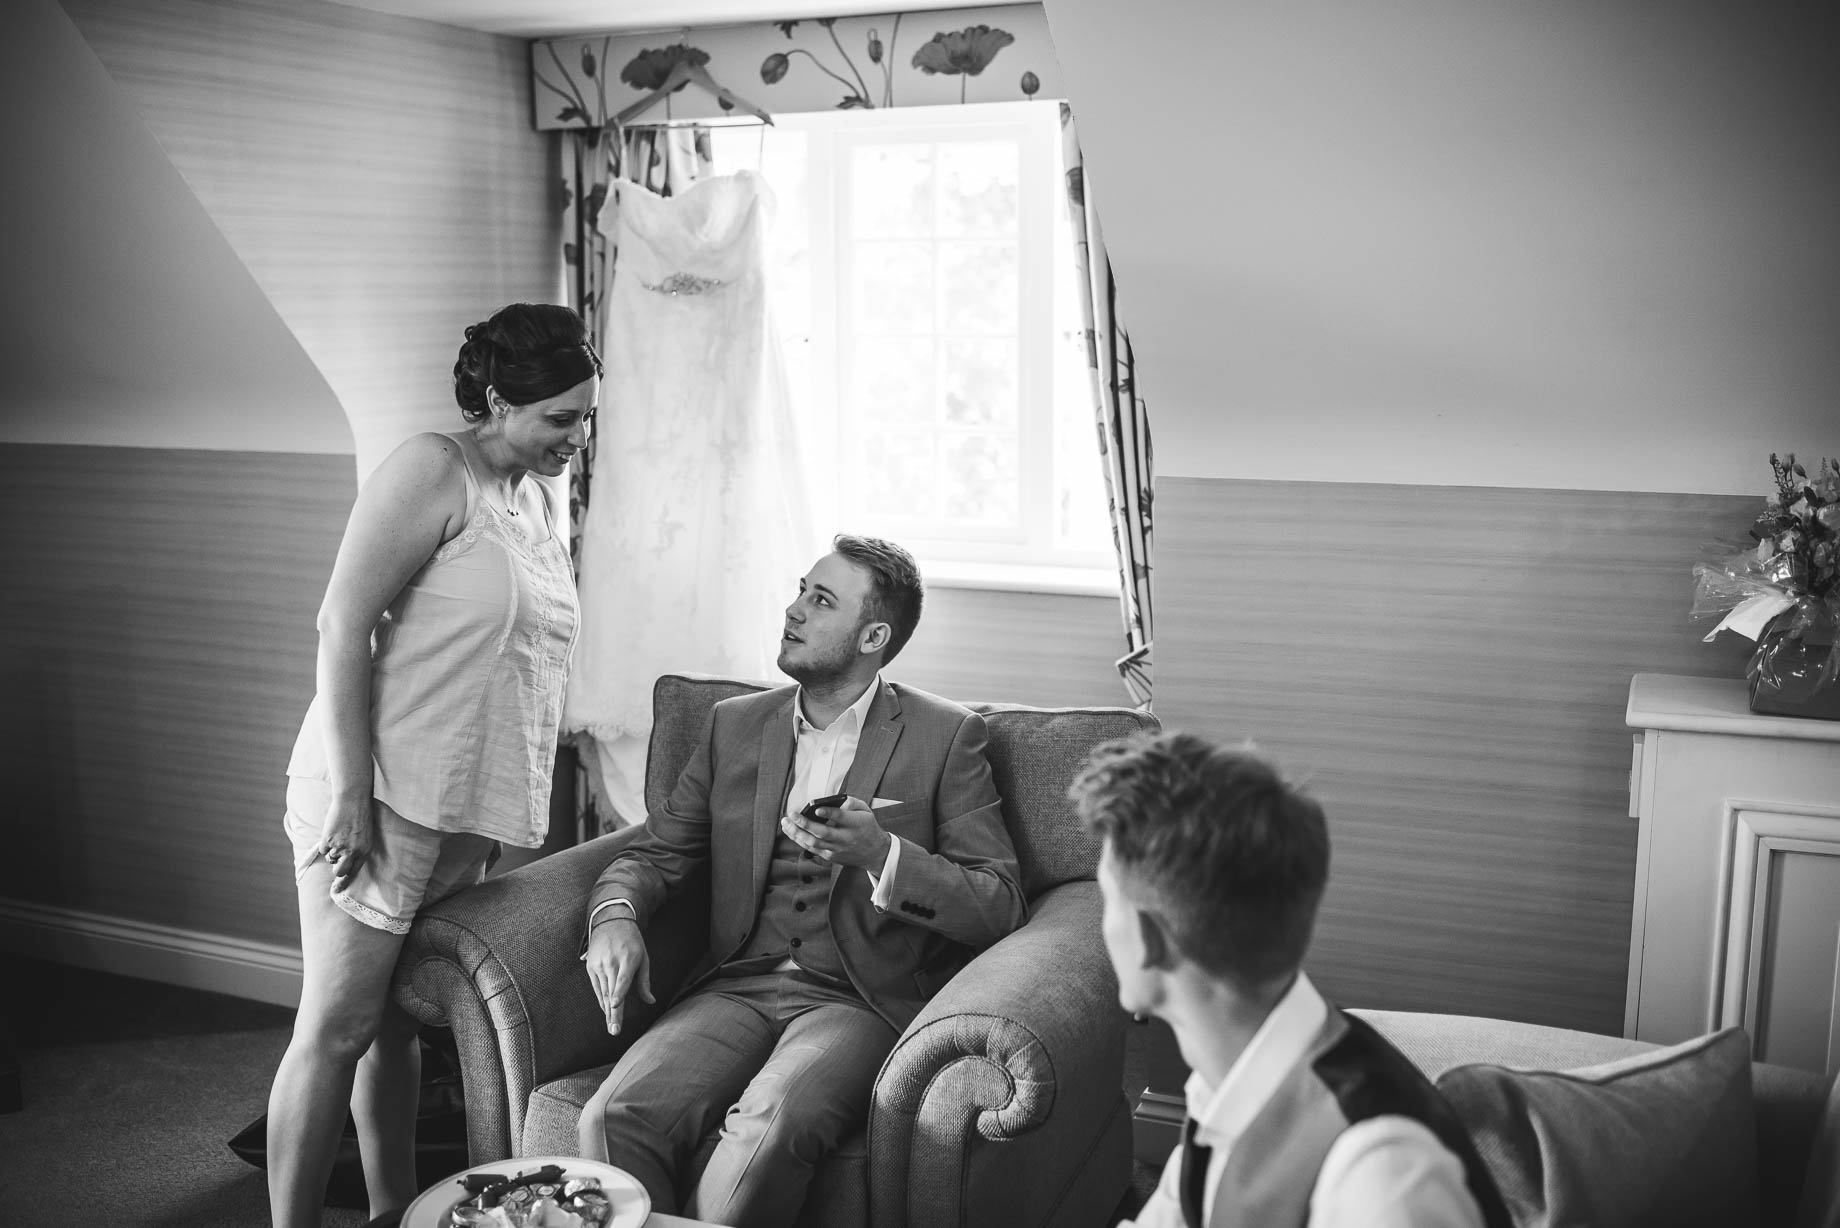 Luton Hoo wedding photography by Guy Collier Photography - Lauren and Gem (12 of 178)